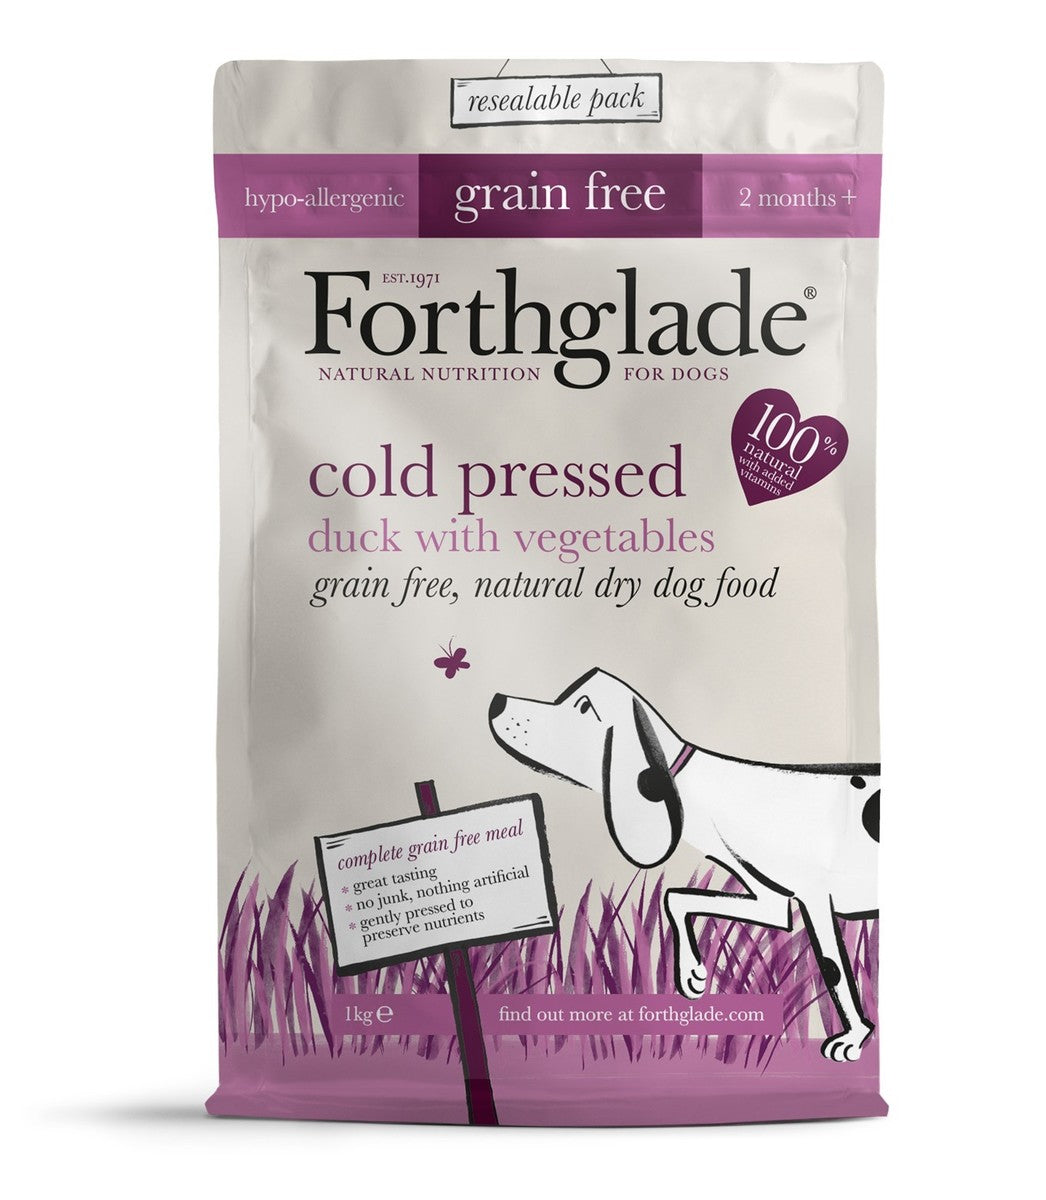 Buy Forthglade Duck Grain Free Cold Pressed Dog Food